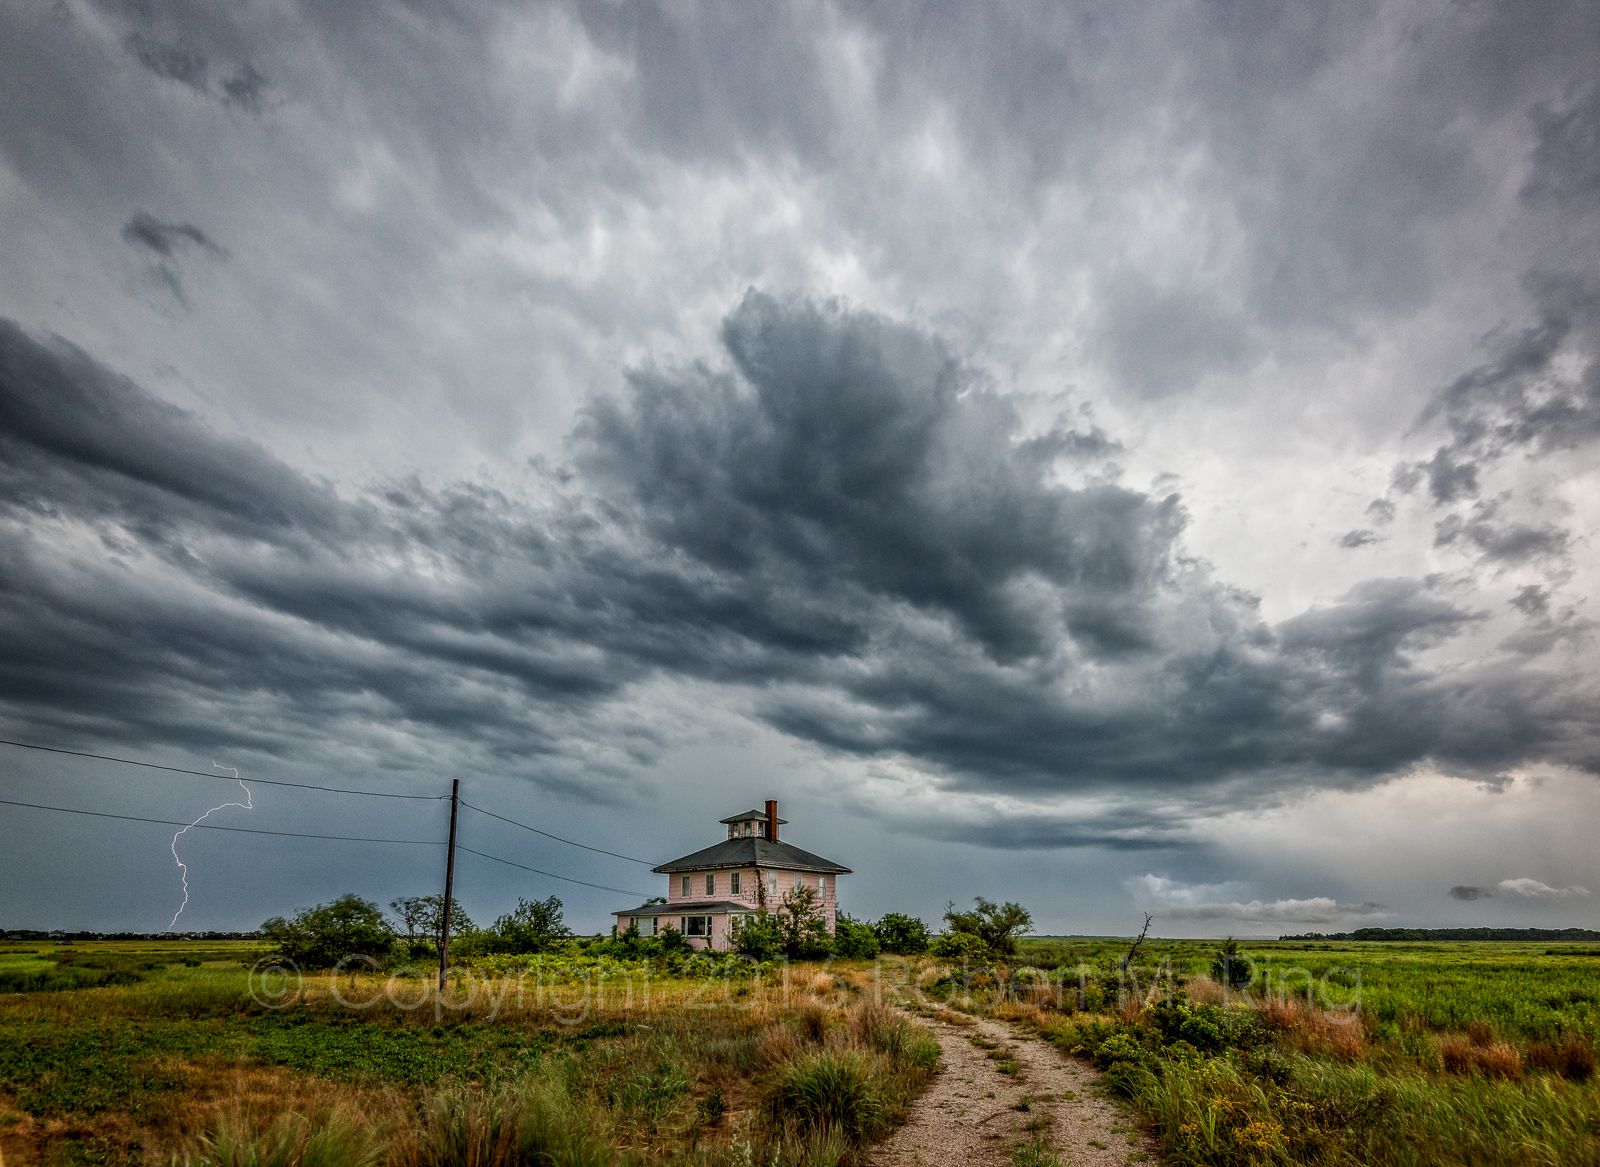 Storms, Pink House, clouds, sky, lightning, cloud, New England, photo